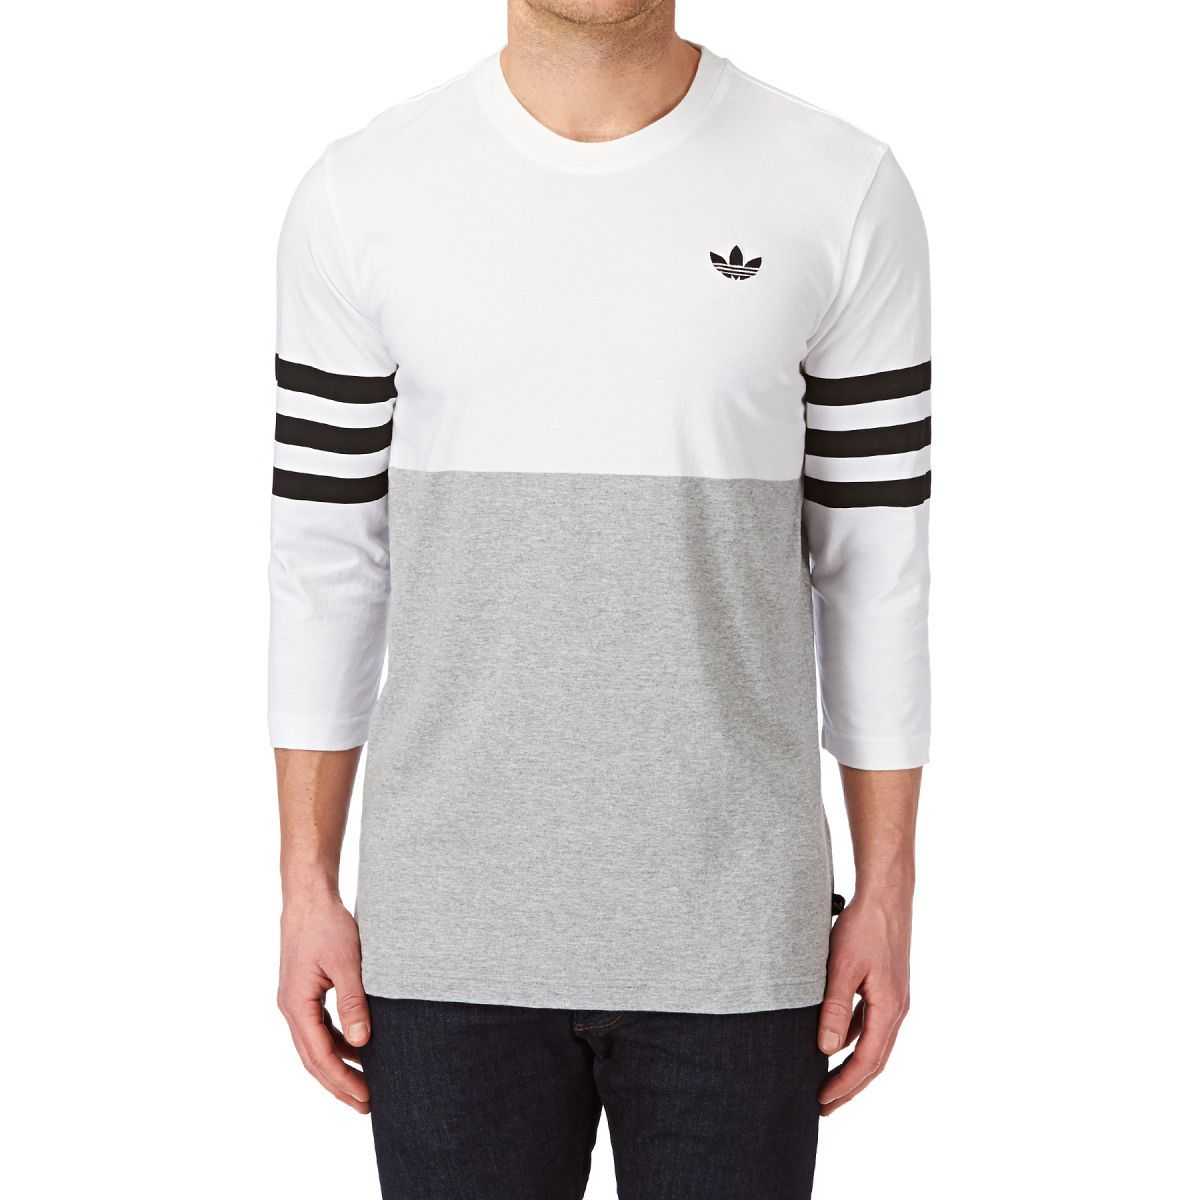 Adidas Originals Stripesback Long Sleeve T Shirt White